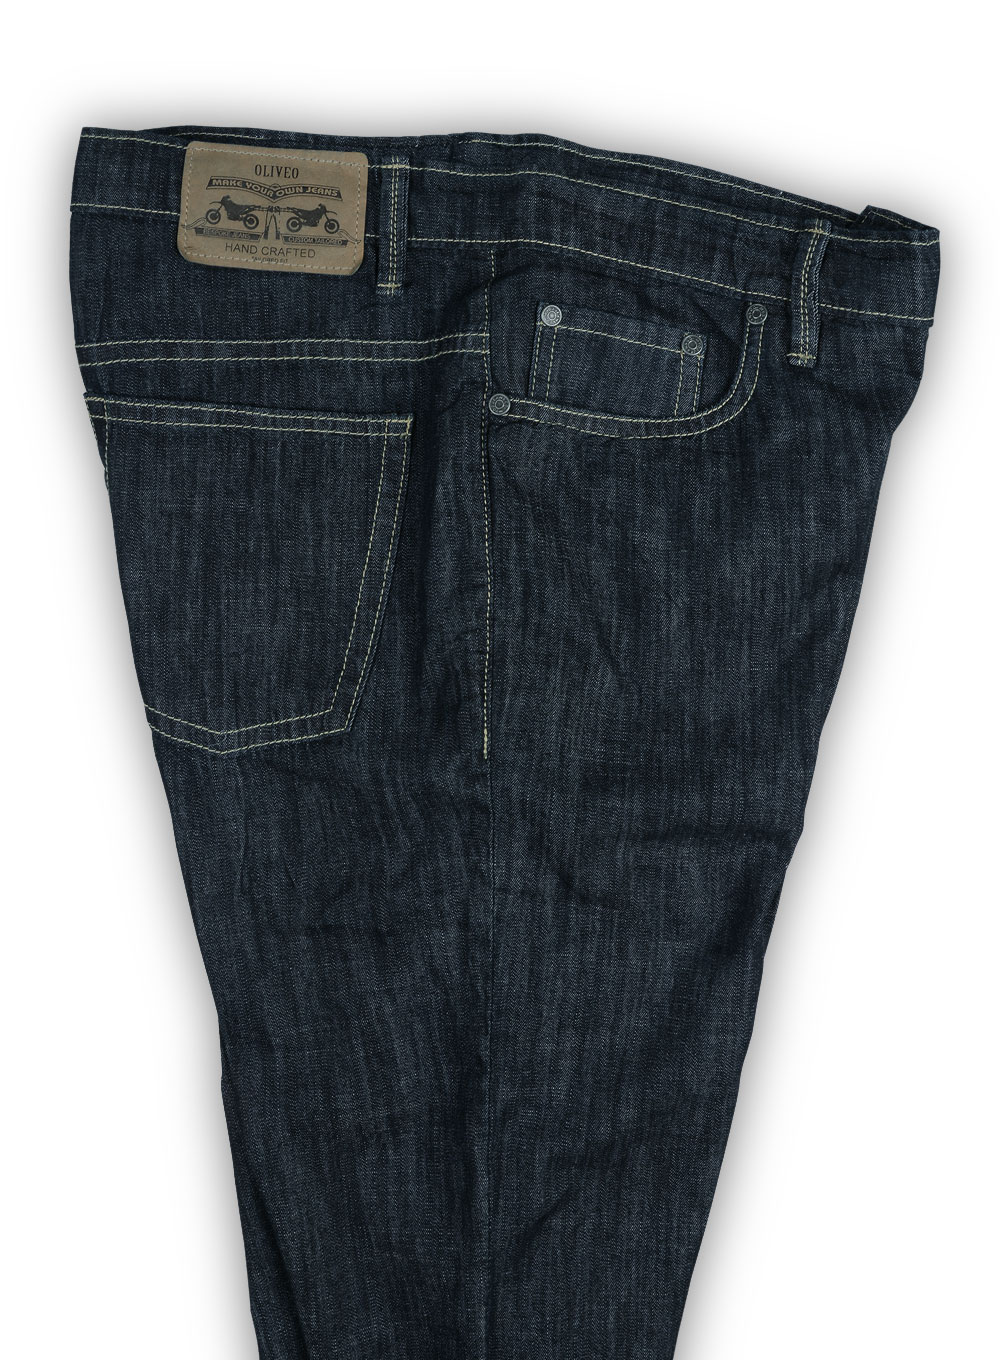 6oz Feather Light Weight Jeans Hard Wash